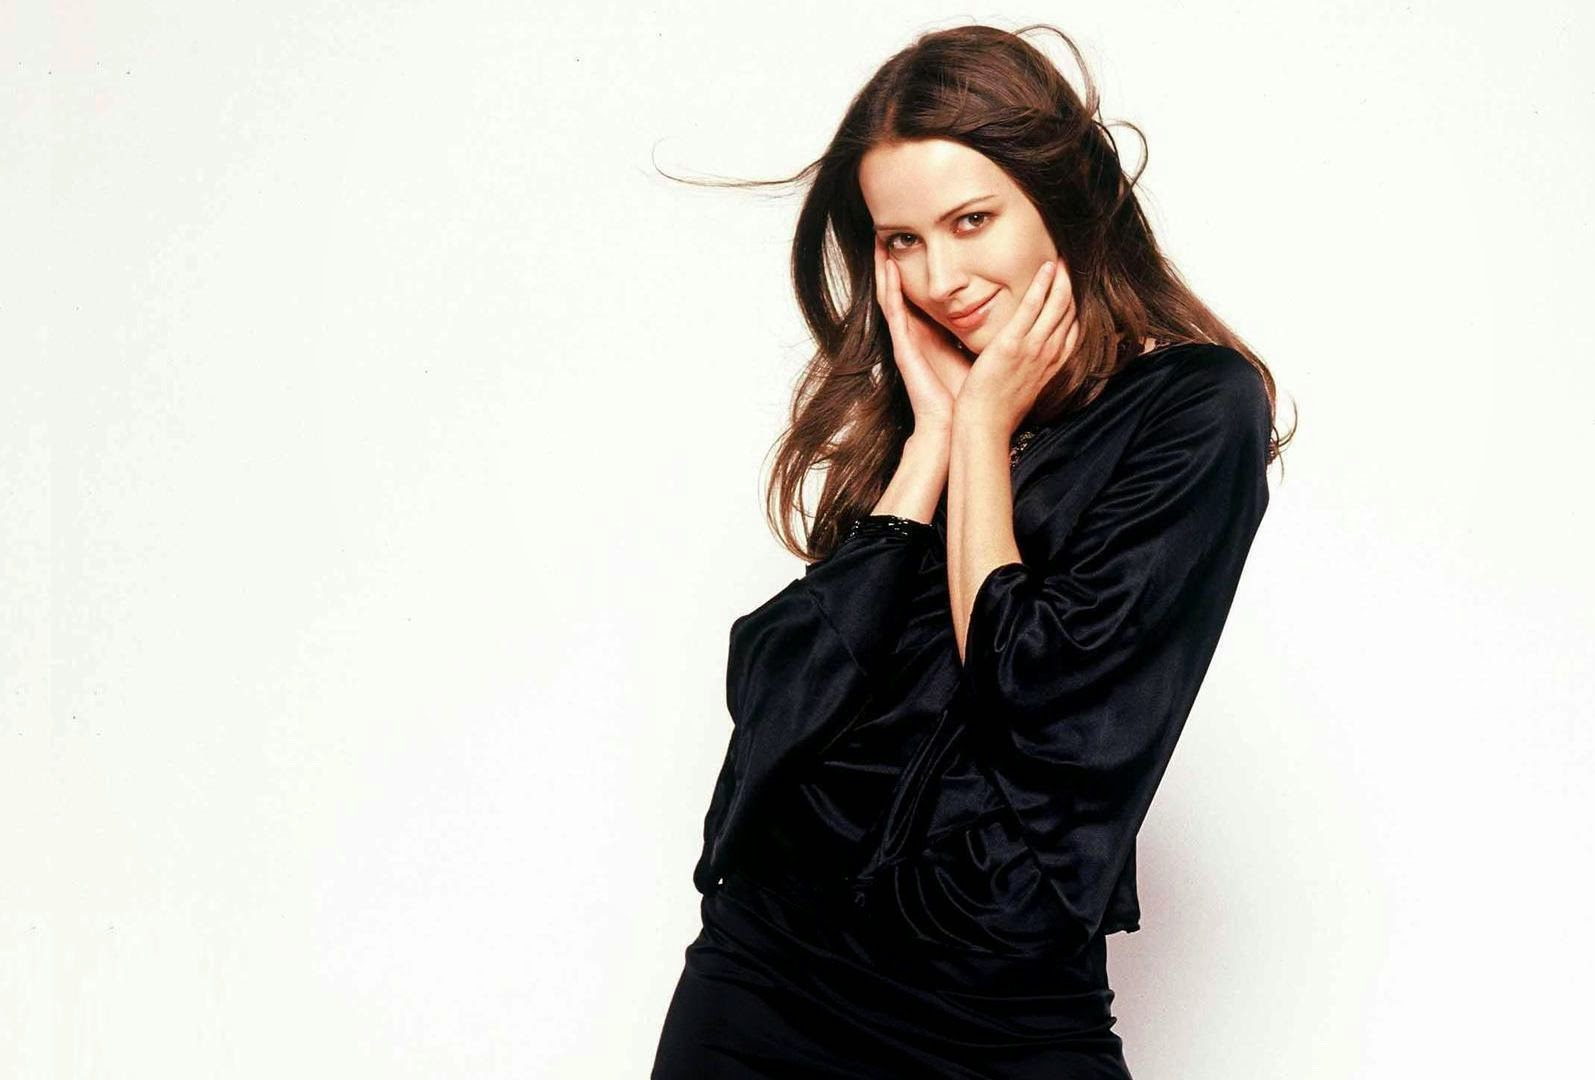 star celebrity wallpapers: amy acker hd wallpapers